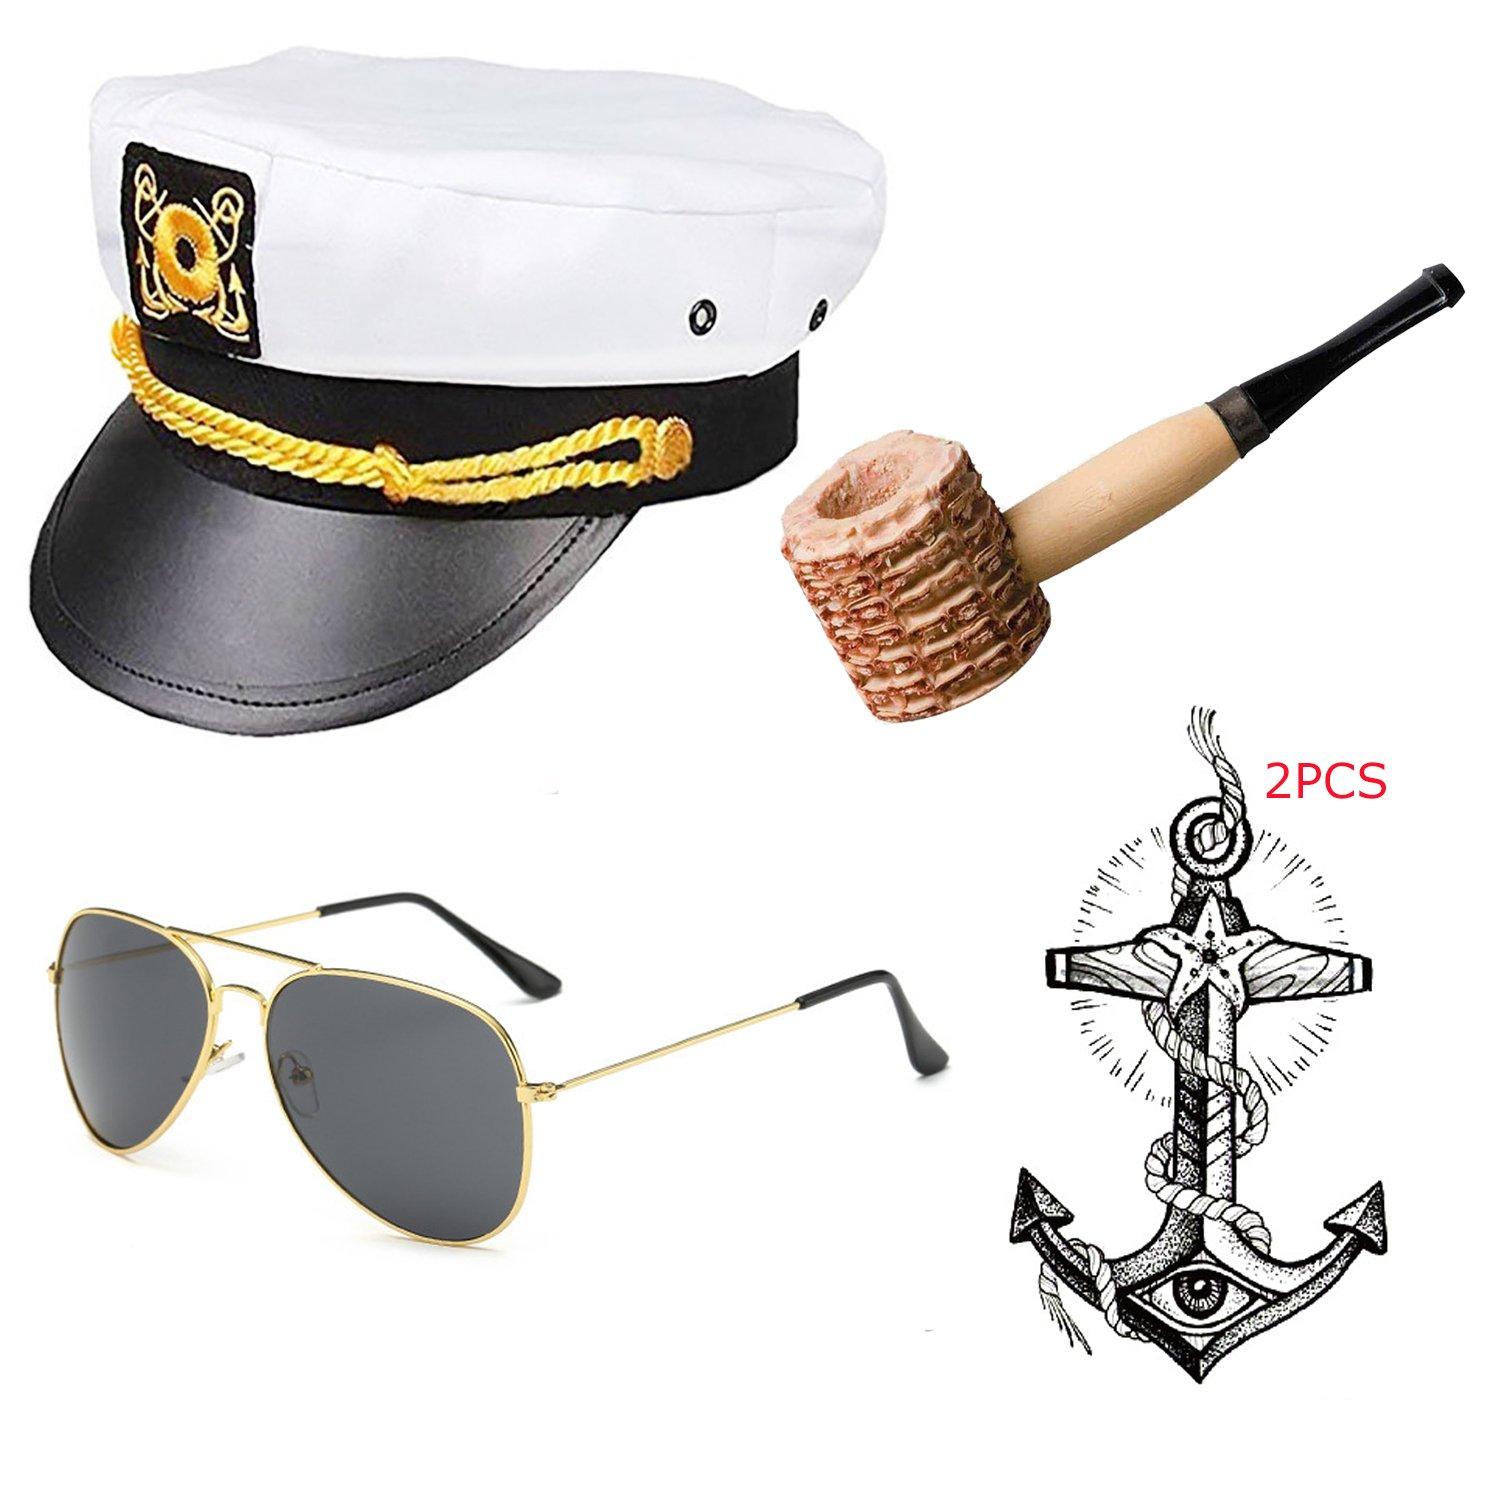 a8bb4df2a18a5 Packet include  1 x Yacht Captain   Sailor Hat  1 x Corn Cob Pipe  1 x  Aviator Sunglasses  2 x Vintage Anchor Temporary Tattoo Sailor Ship Yacht  Boat ...